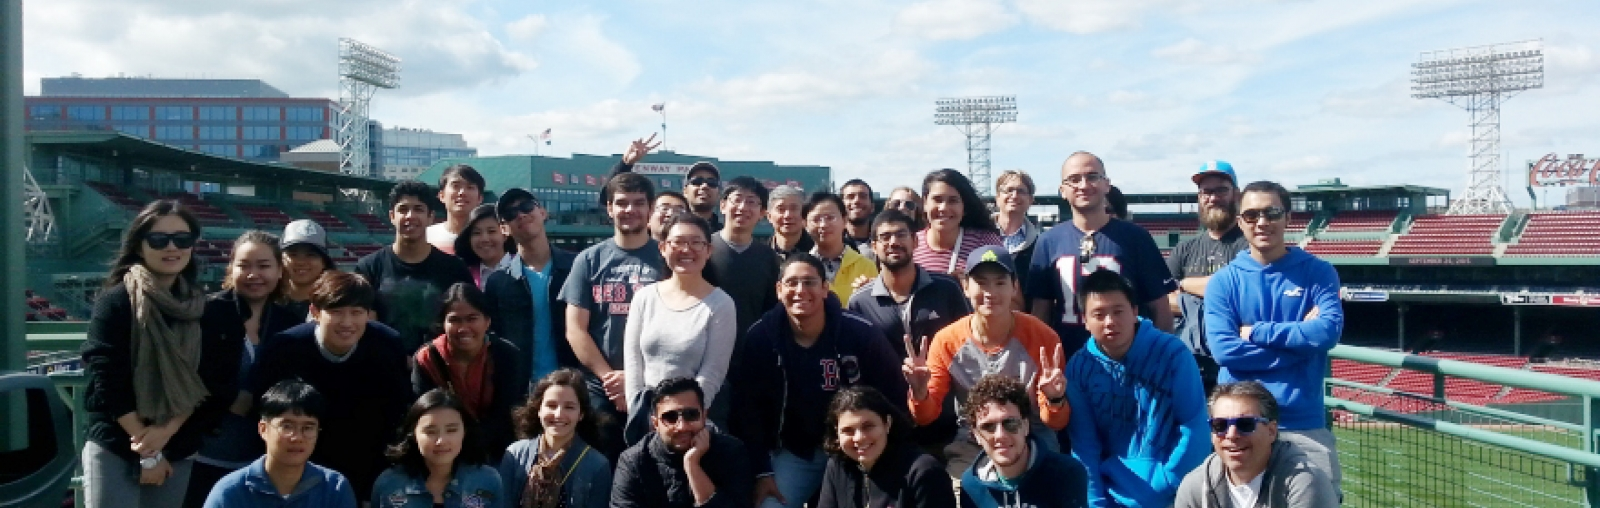 UNH international students at Fenway Park